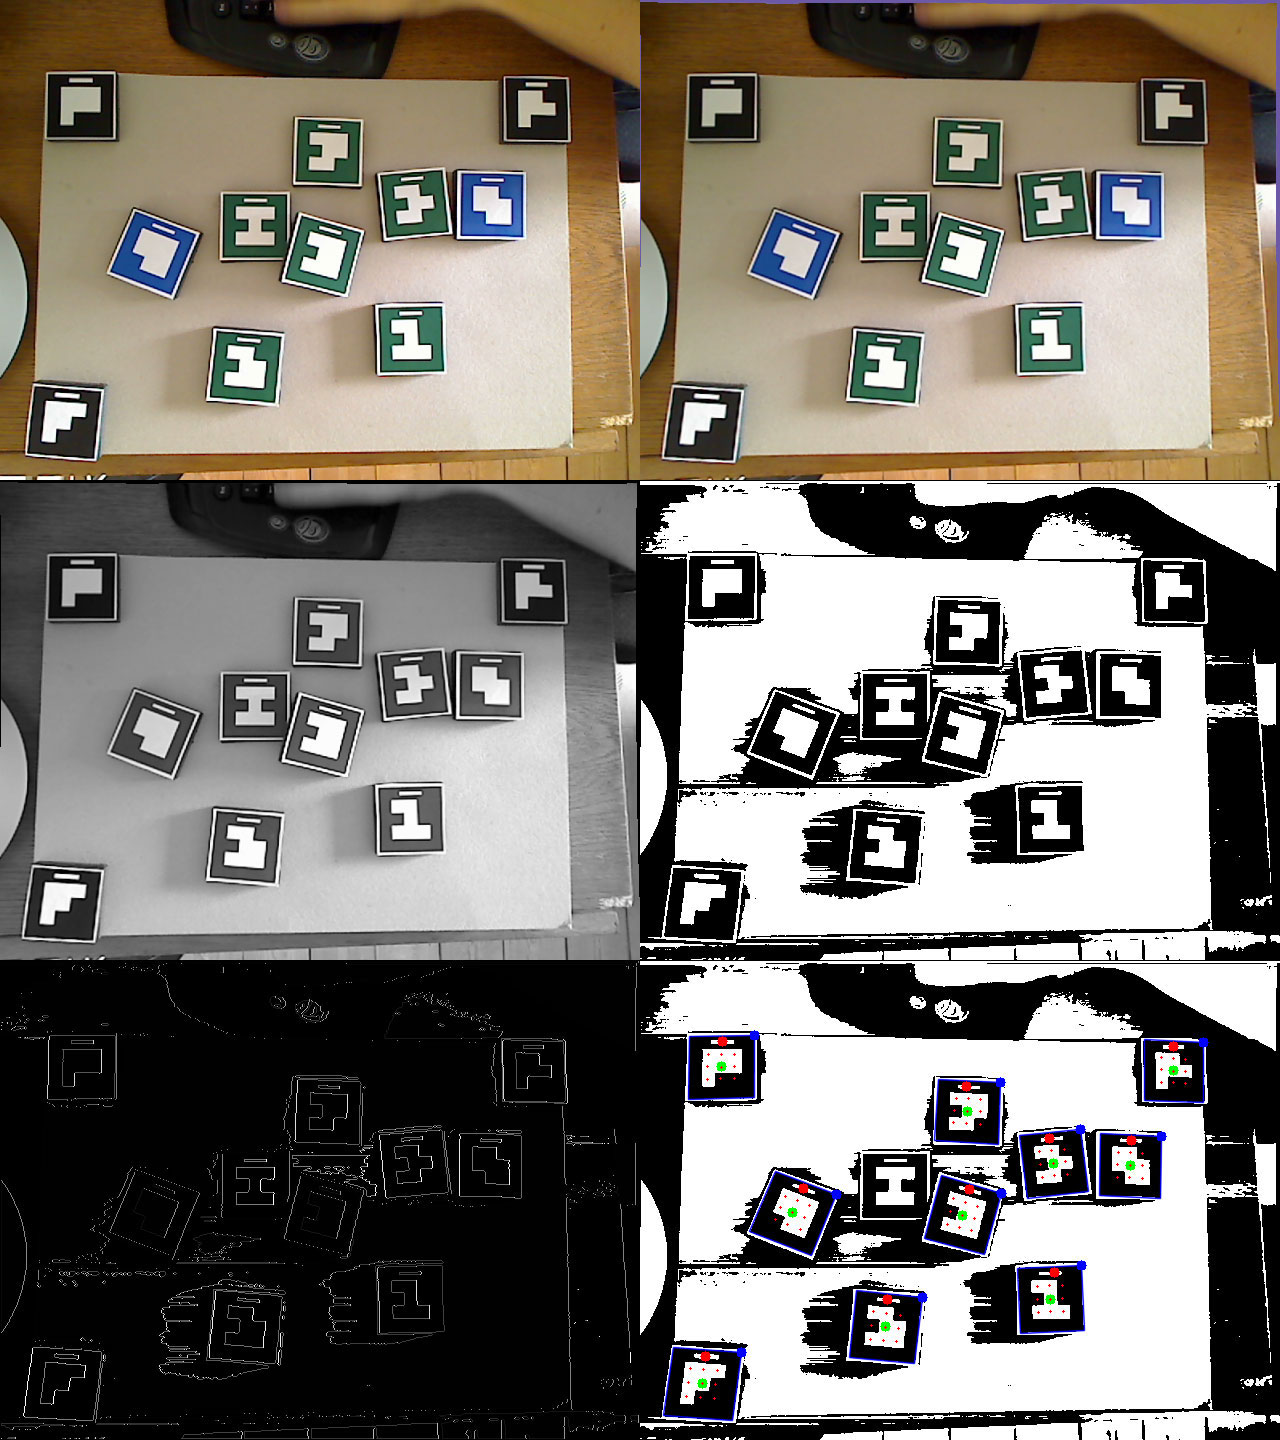 Tag detection algorithm. 1) (Top Left) The original unmodified image as recorded by the camera. 2) (Top Right) Radial distortion compensation. 3) Greyscale conversion. 4) Thresholding. 5) Edge detection. 6) Square/Tag detection.